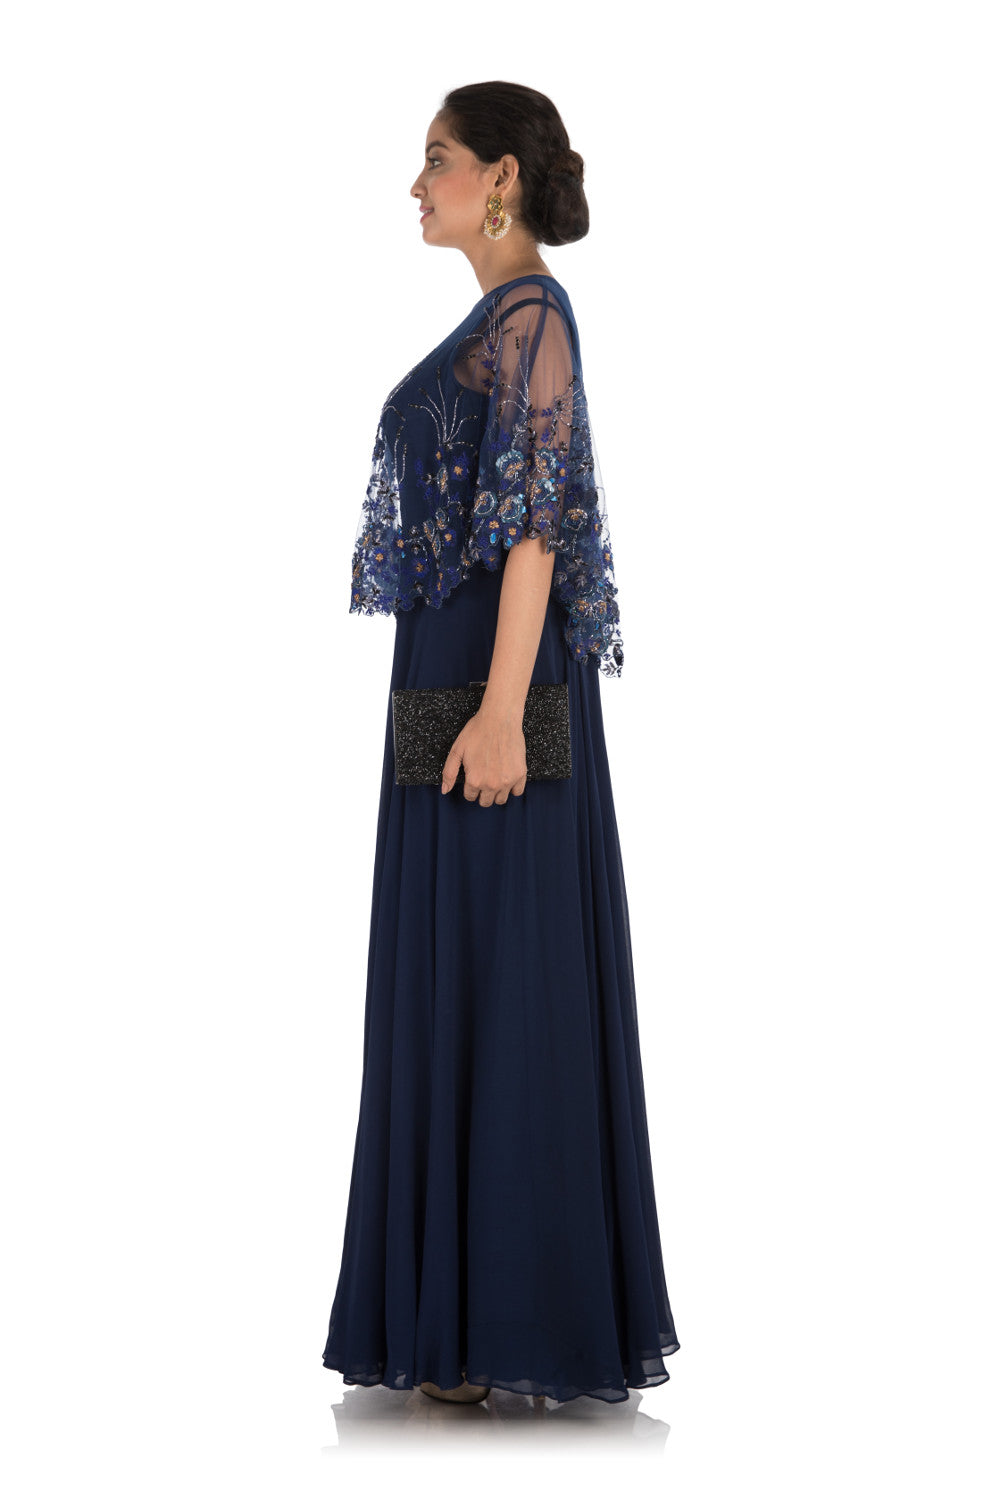 Anju Agarwal. Midnight Blue Embroidered Cape Gown – Velvetry